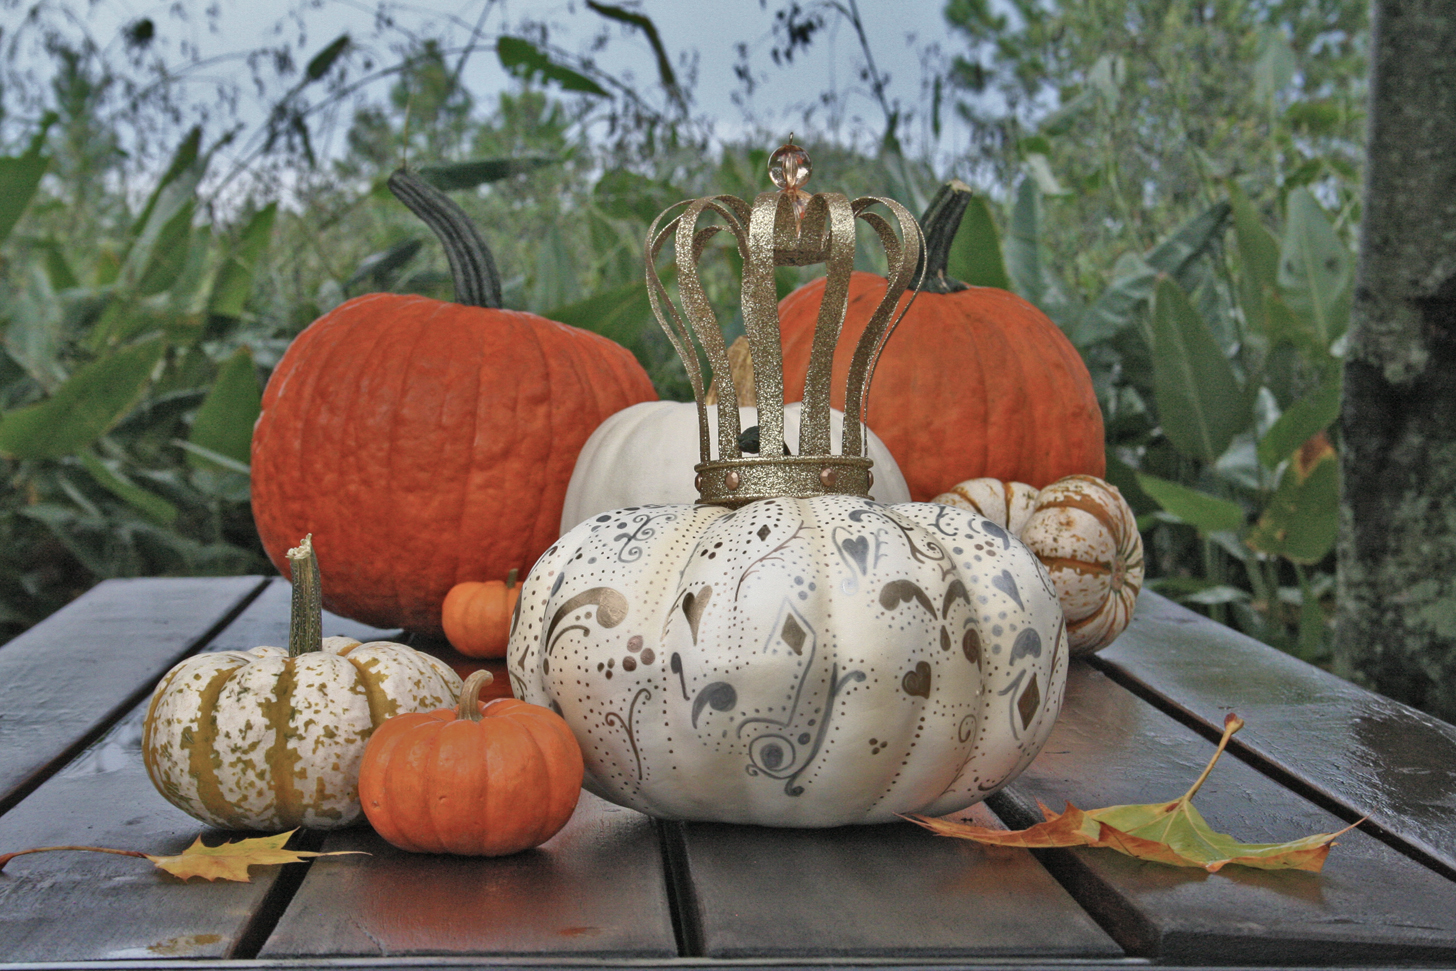 A Royal Pumpkin among the common pumpkins hand decorated for Halloween